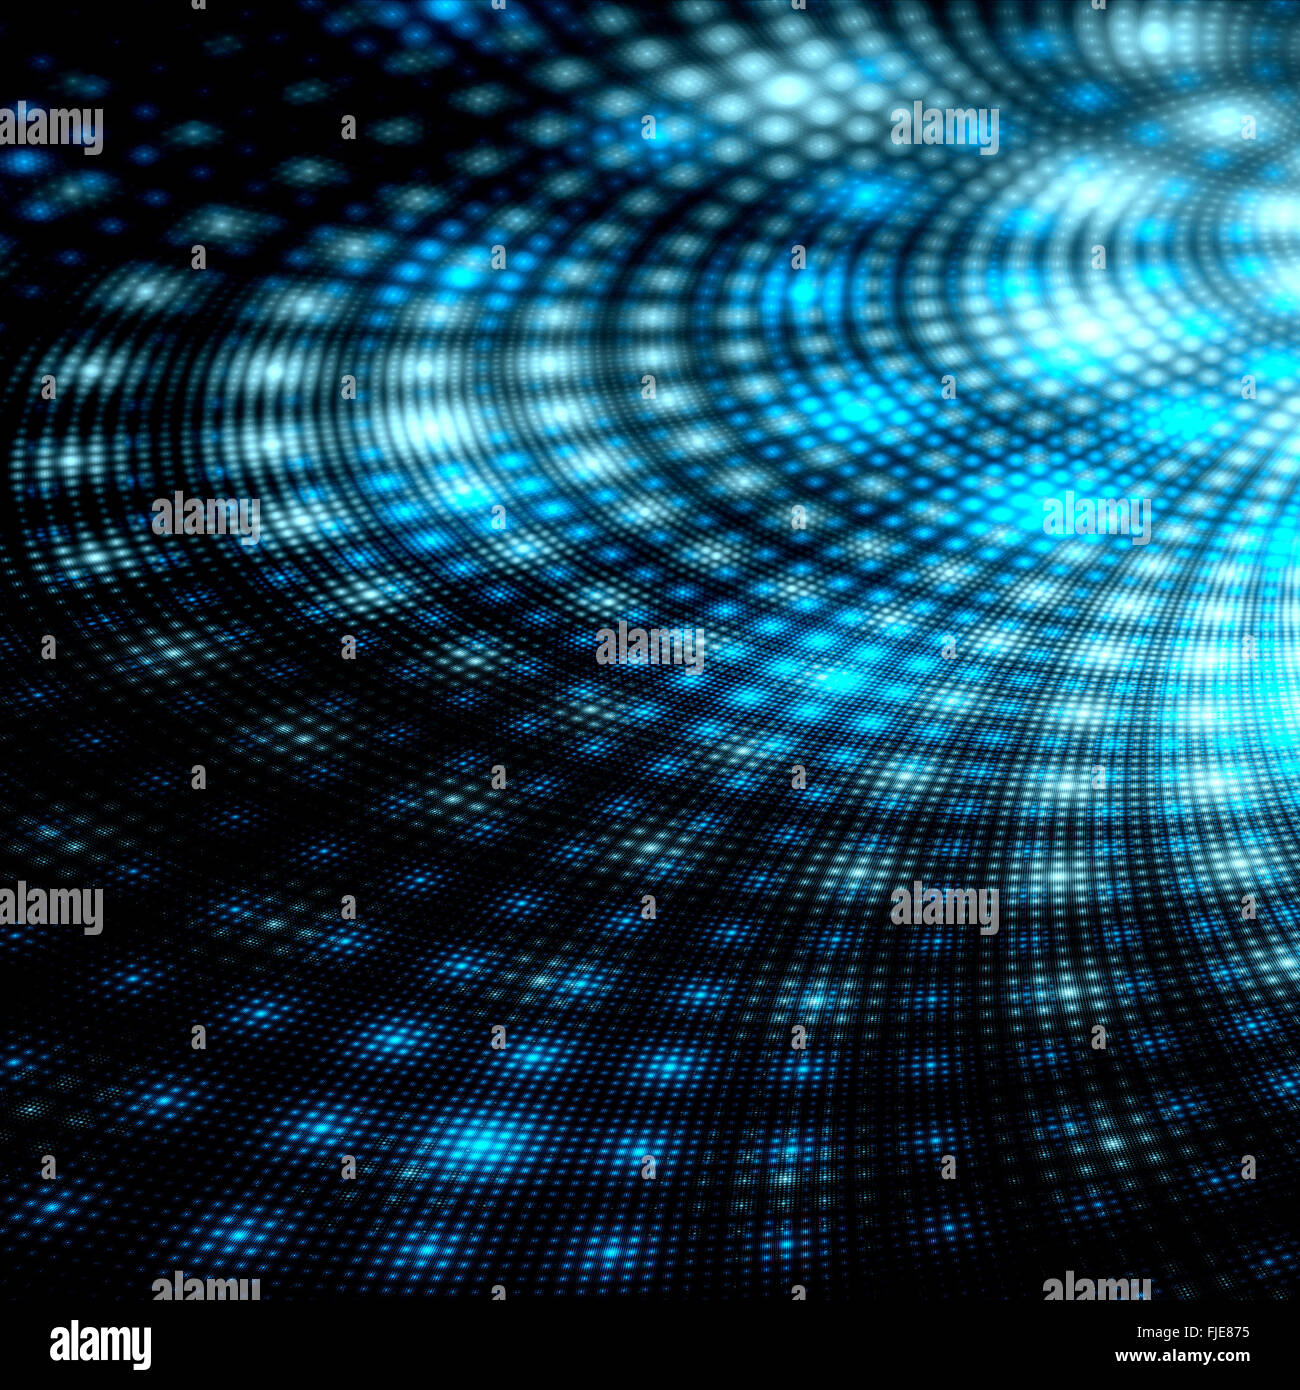 Technological singularity detail, computer generated abstract background - Stock Image